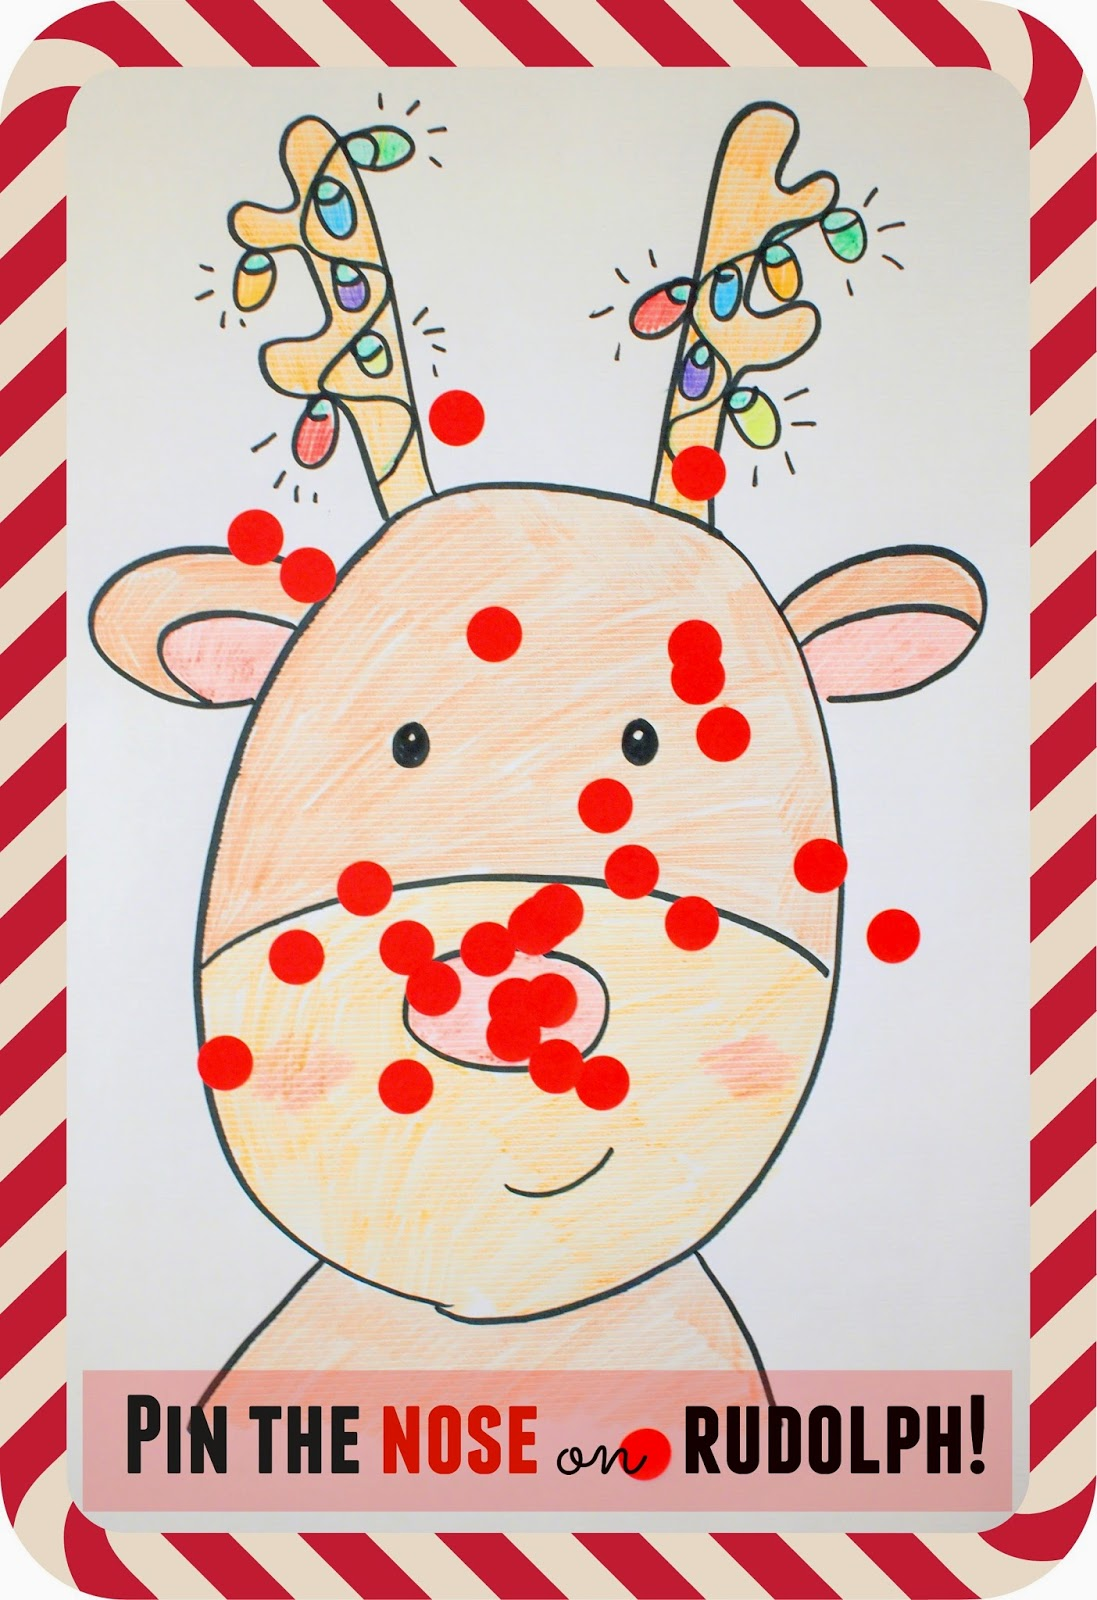 PIn the nose on Rudolph Christmas Game